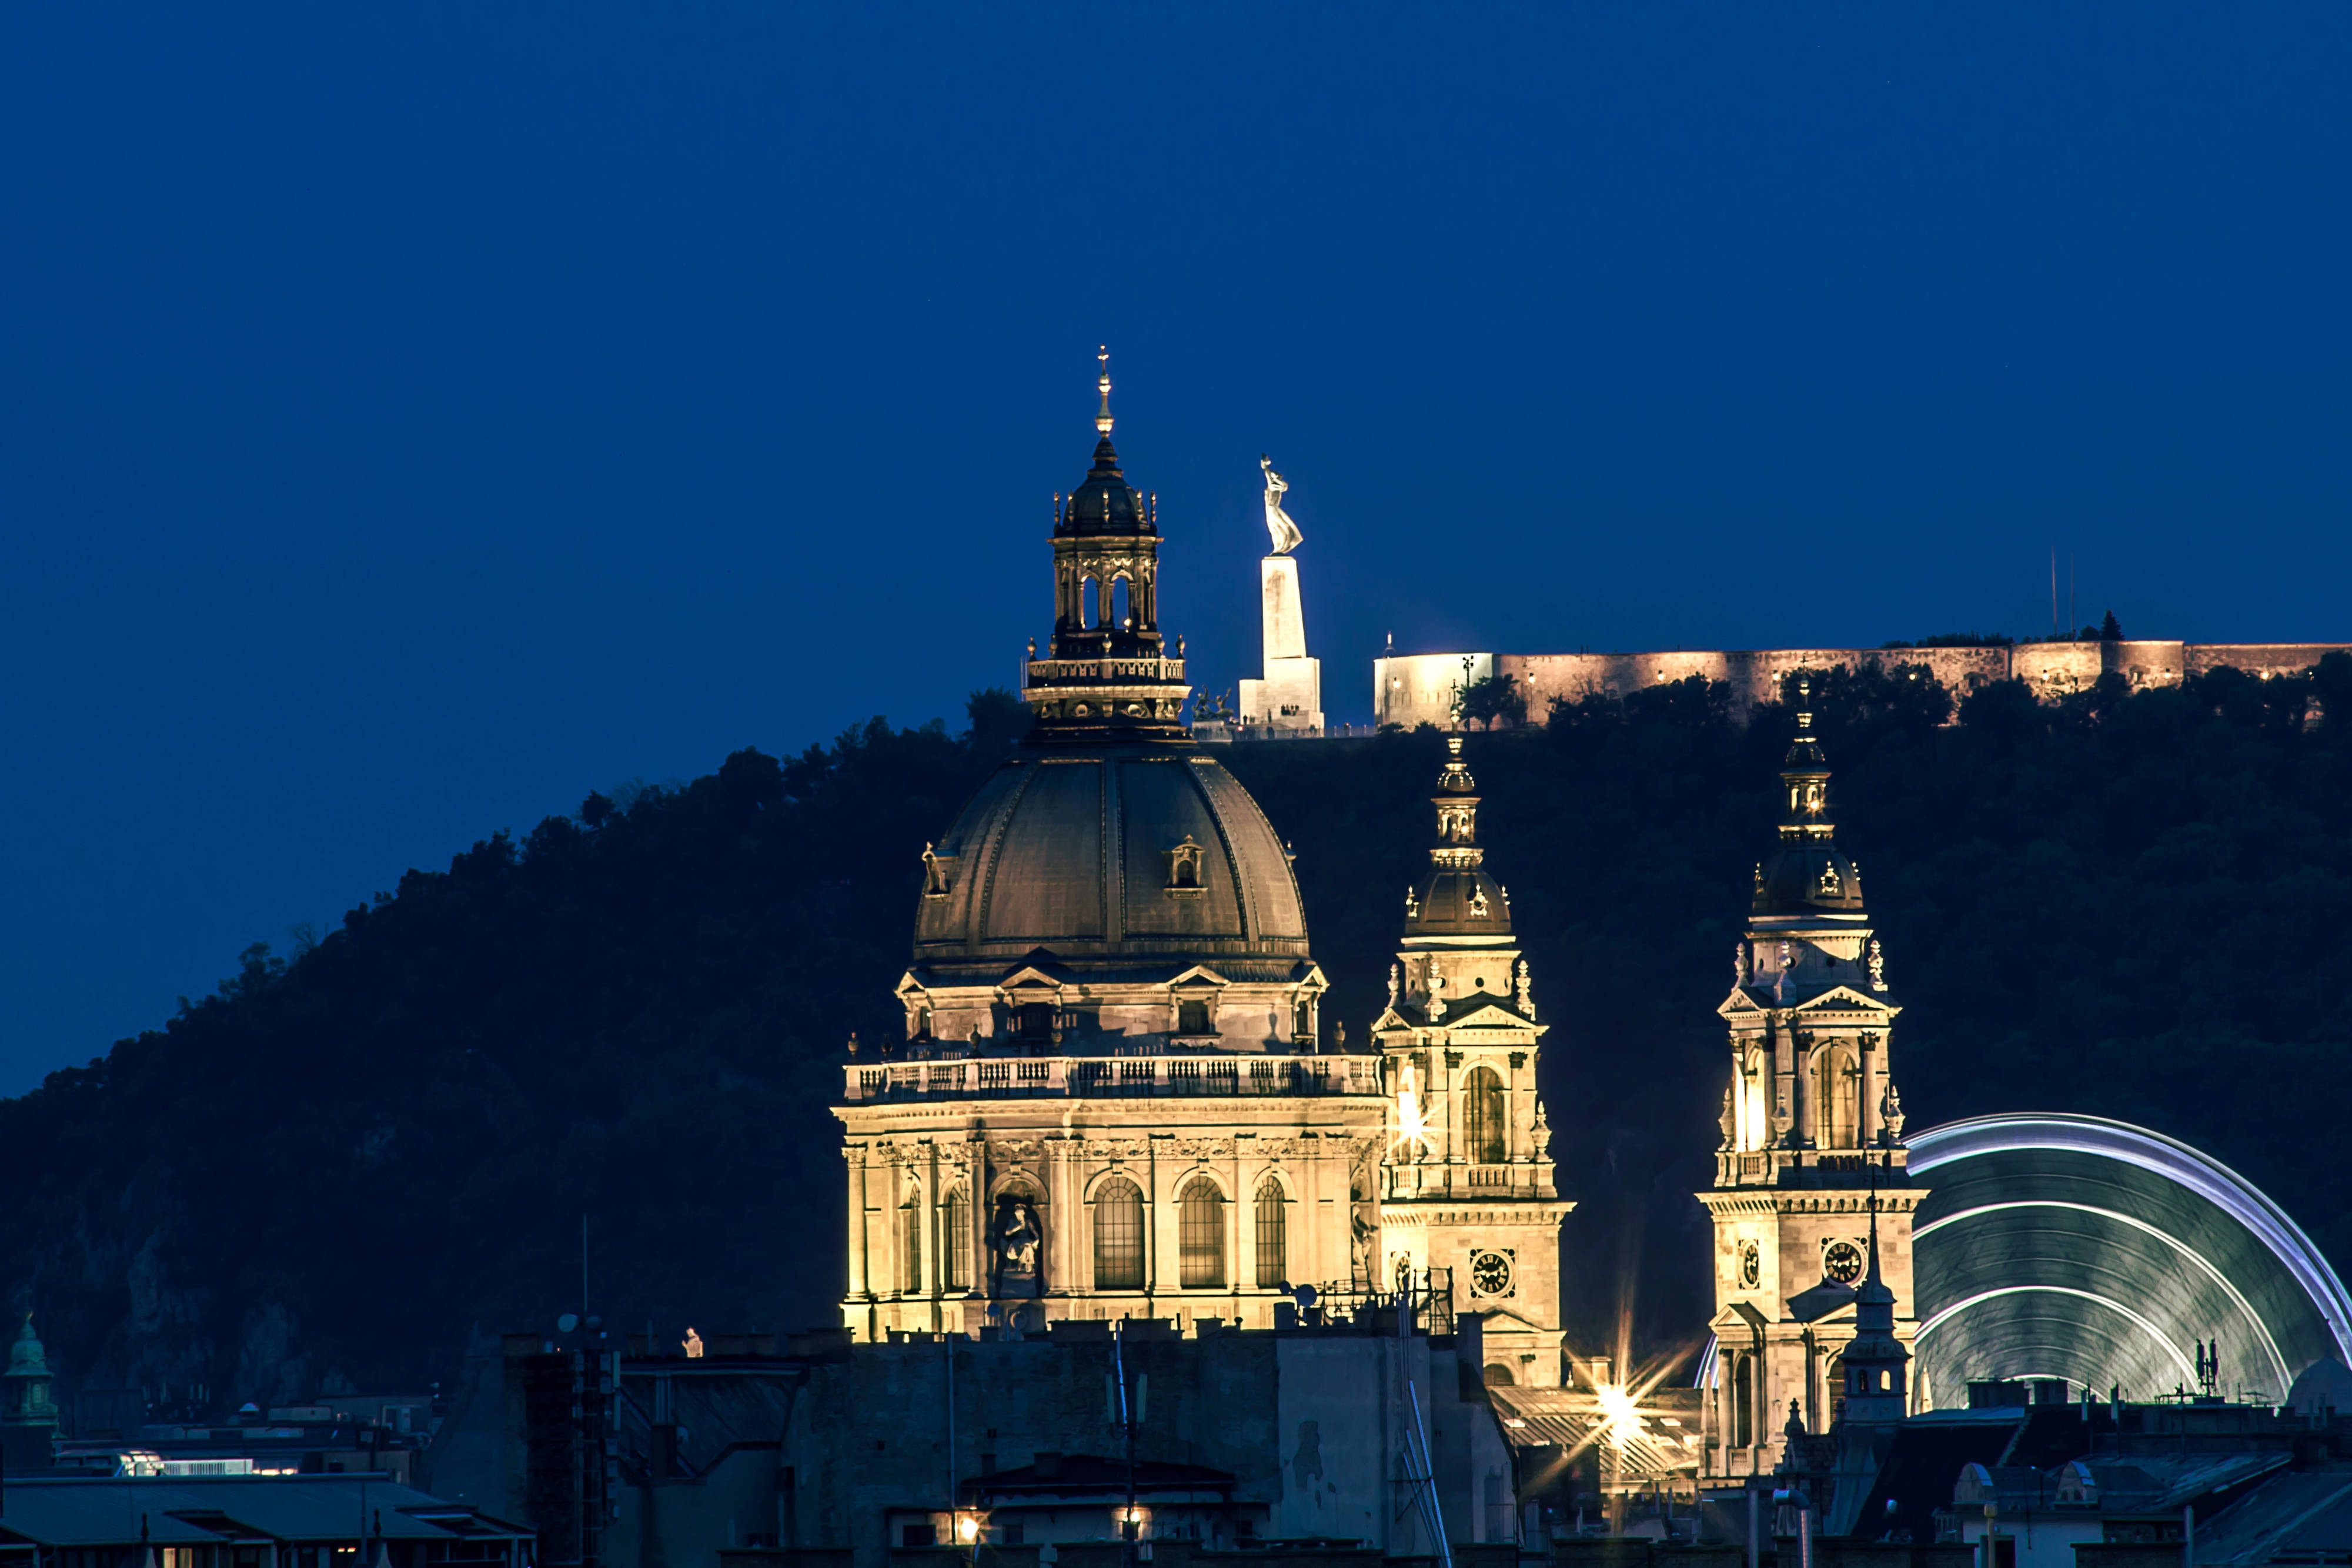 St. Stephens Basilica in Budapest